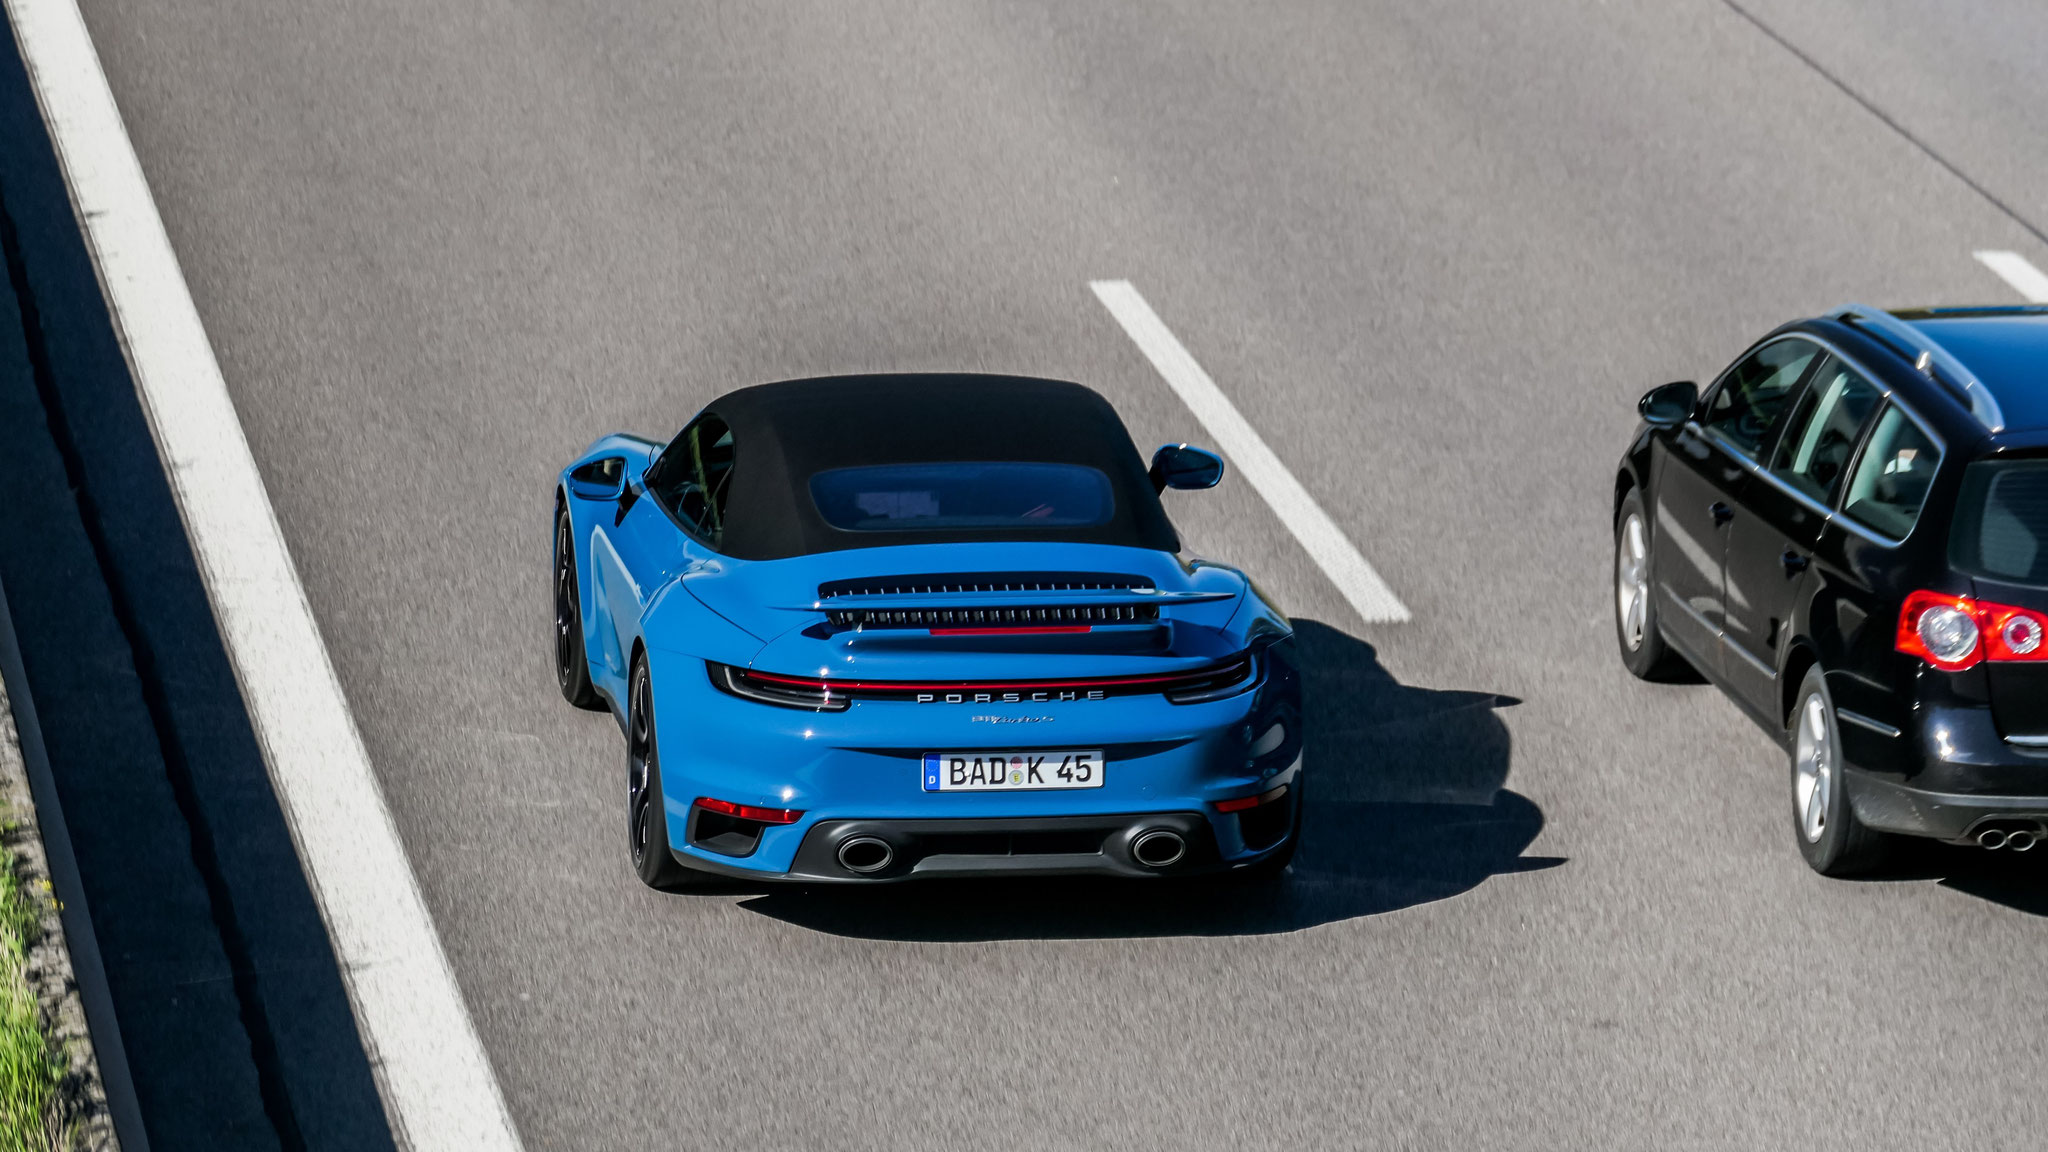 Porsche 911 Turbo S - BAD-K-45